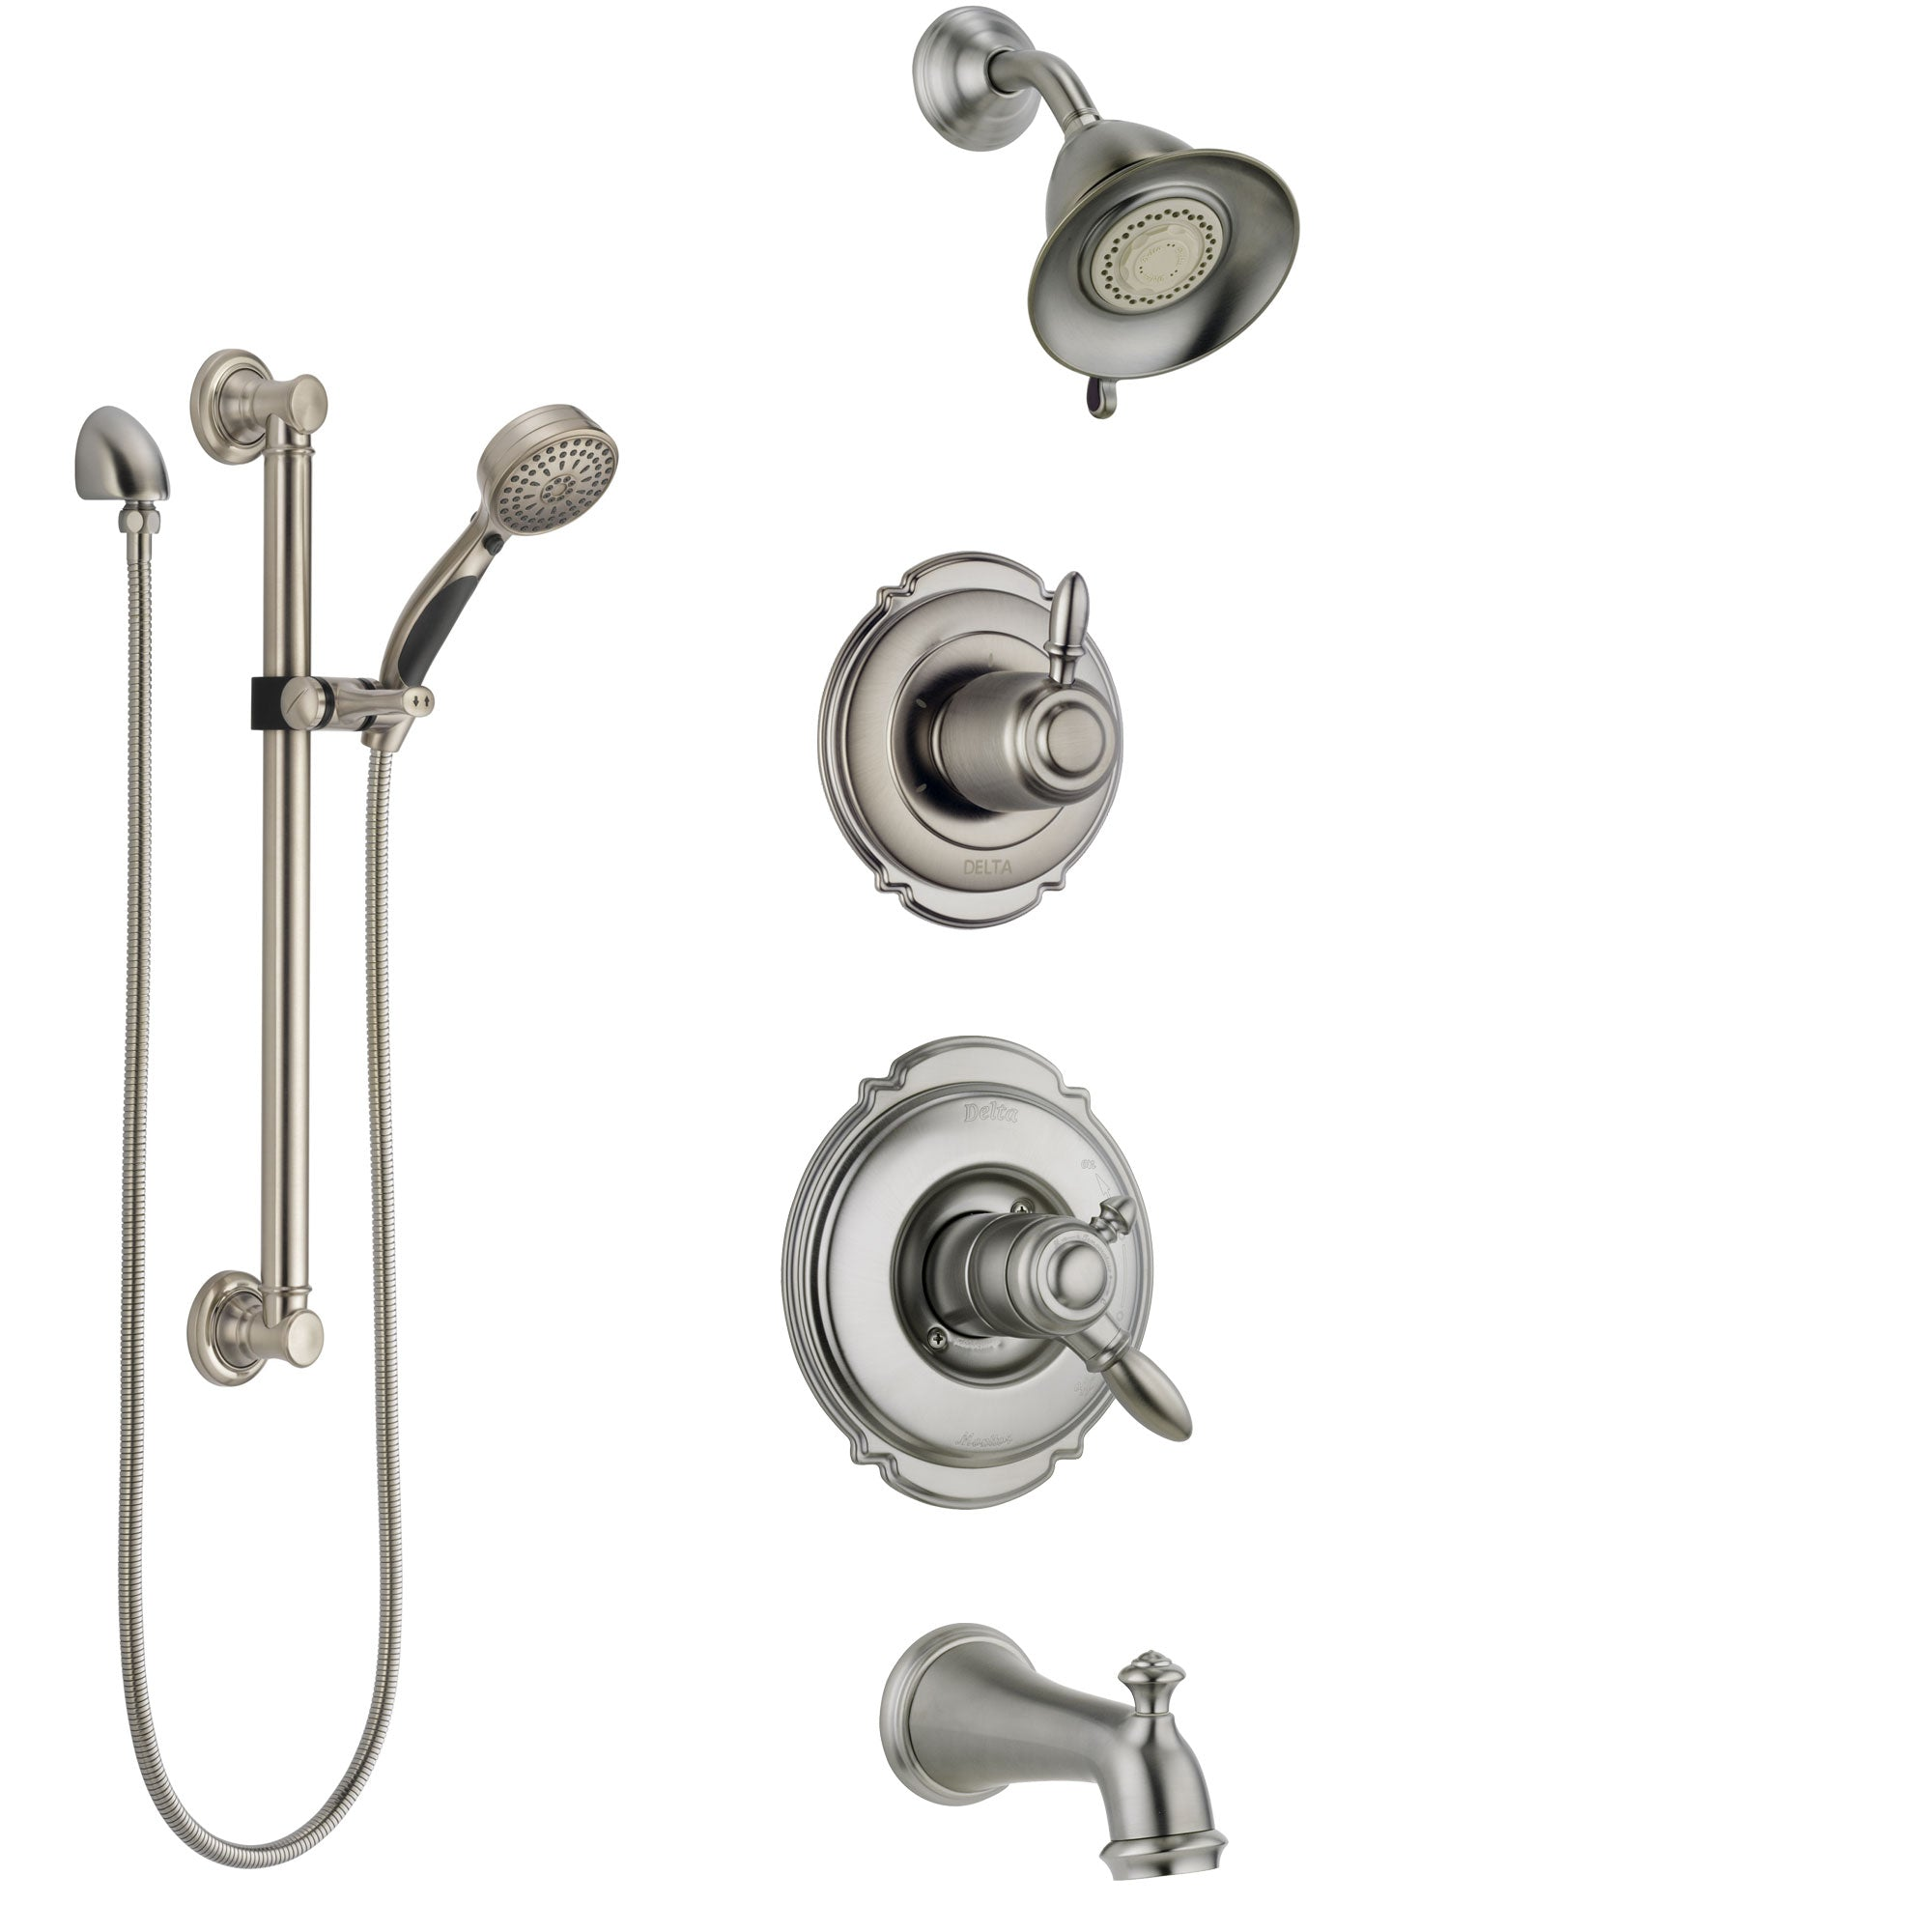 Delta Victorian Stainless Steel Finish Tub and Shower System with Dual Control Handle, Diverter, Showerhead, and Hand Shower with Grab Bar SS17455SS3